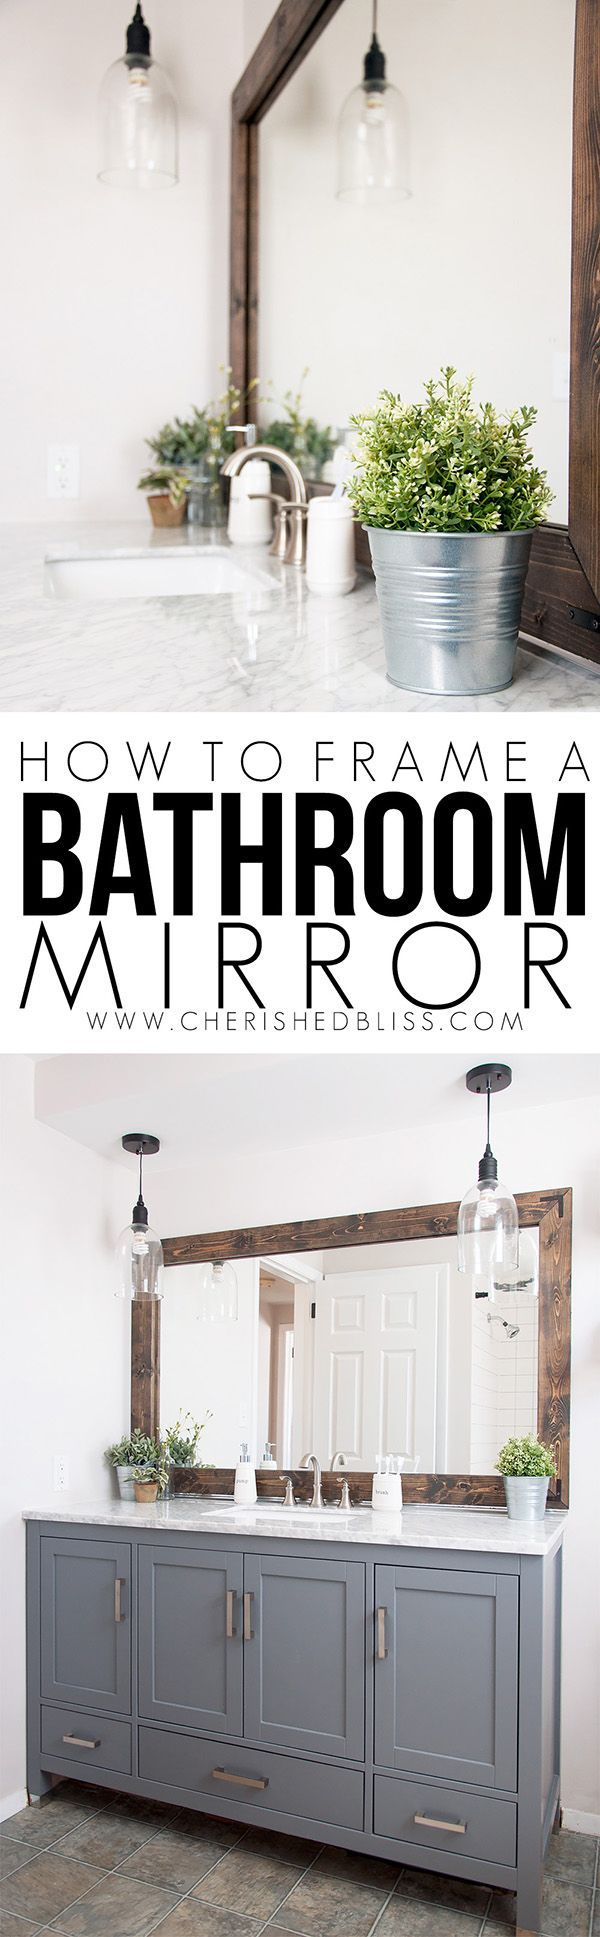 Bathroom diy decorations - What S New In The World Of Farmhouse Home Decor Diy And More Page 7 Of